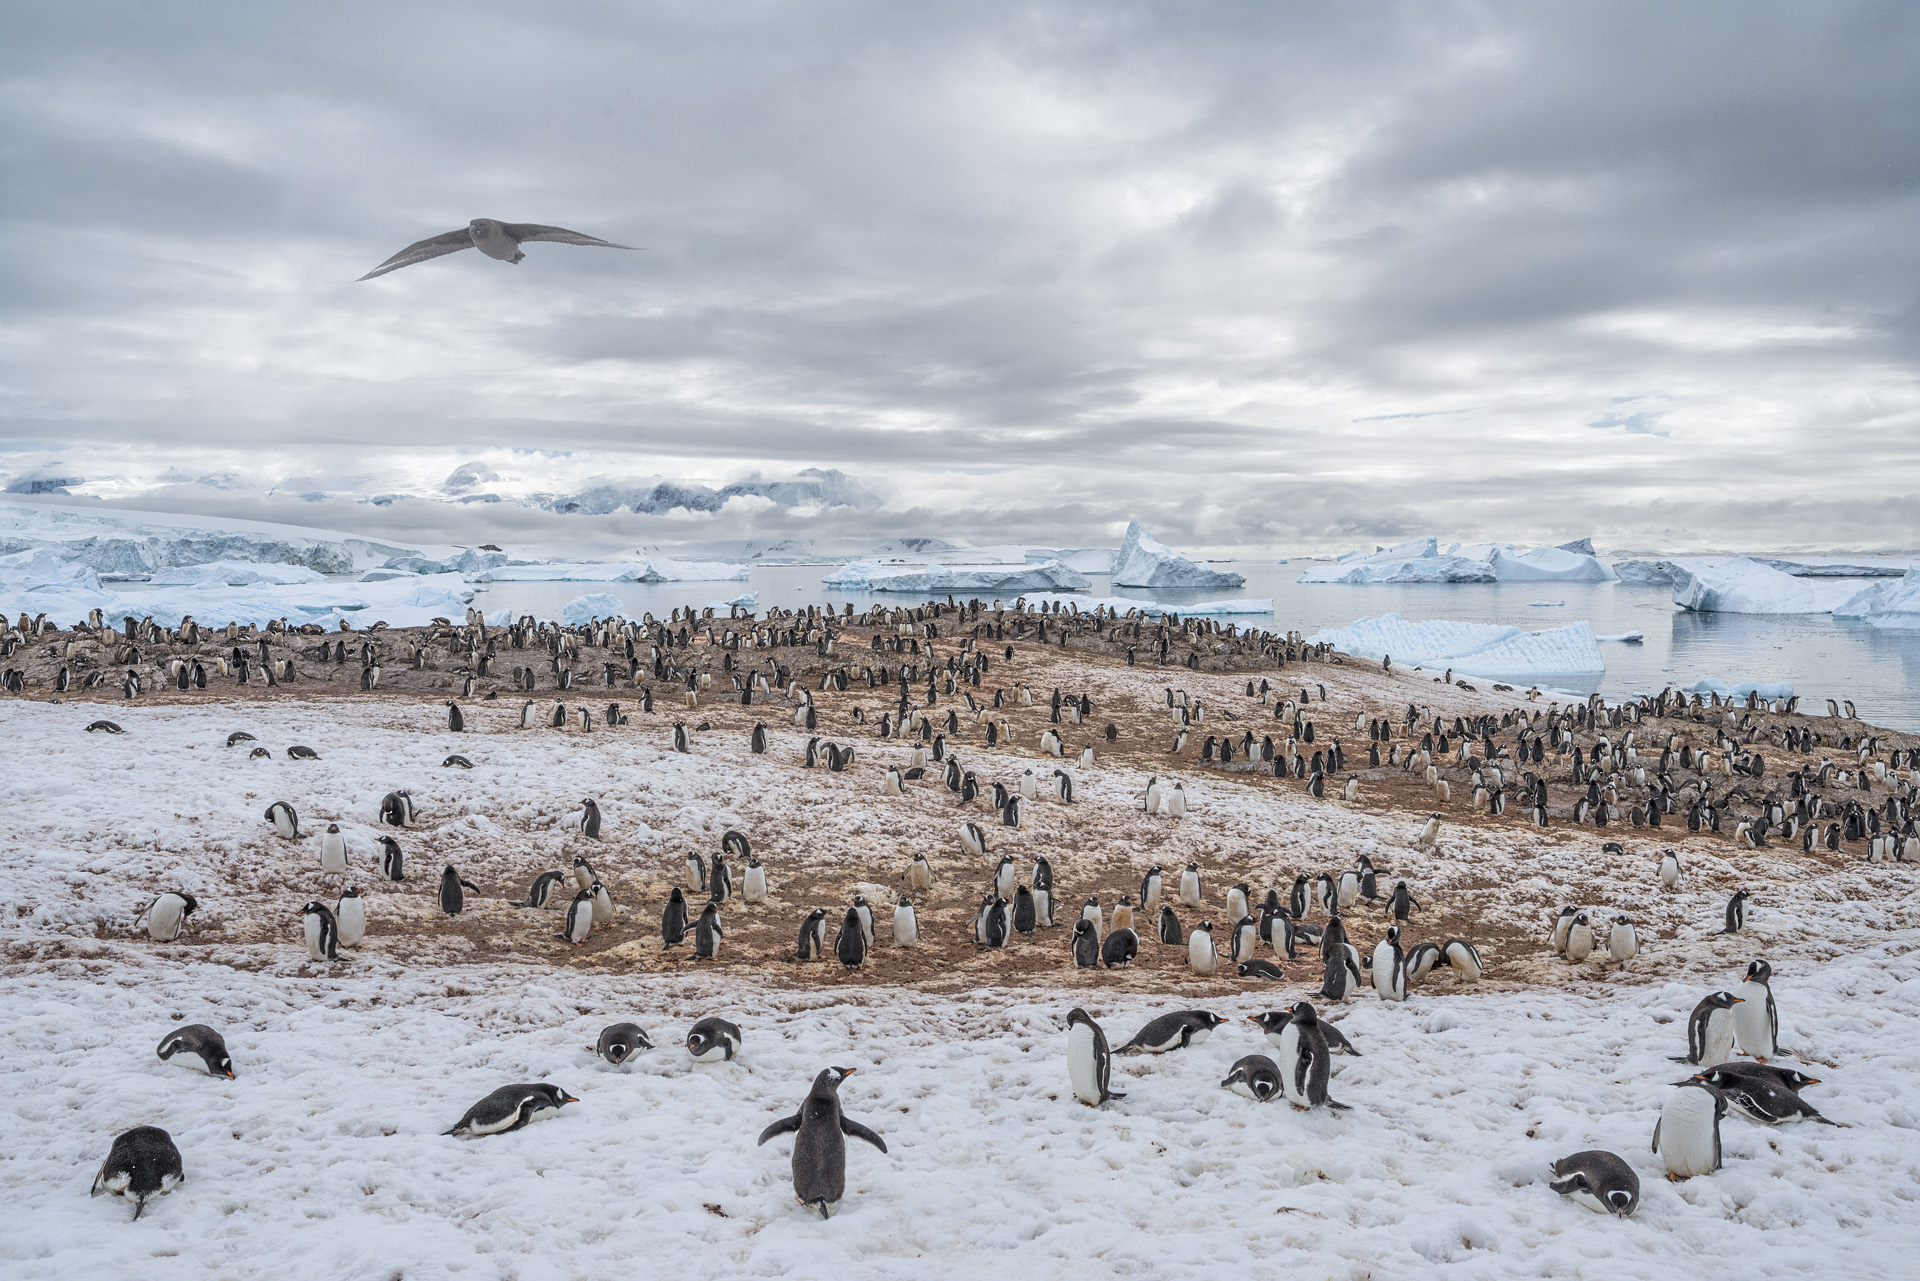 Gentoo Penguin Colony, Cuverville Island, Antarctica 2016